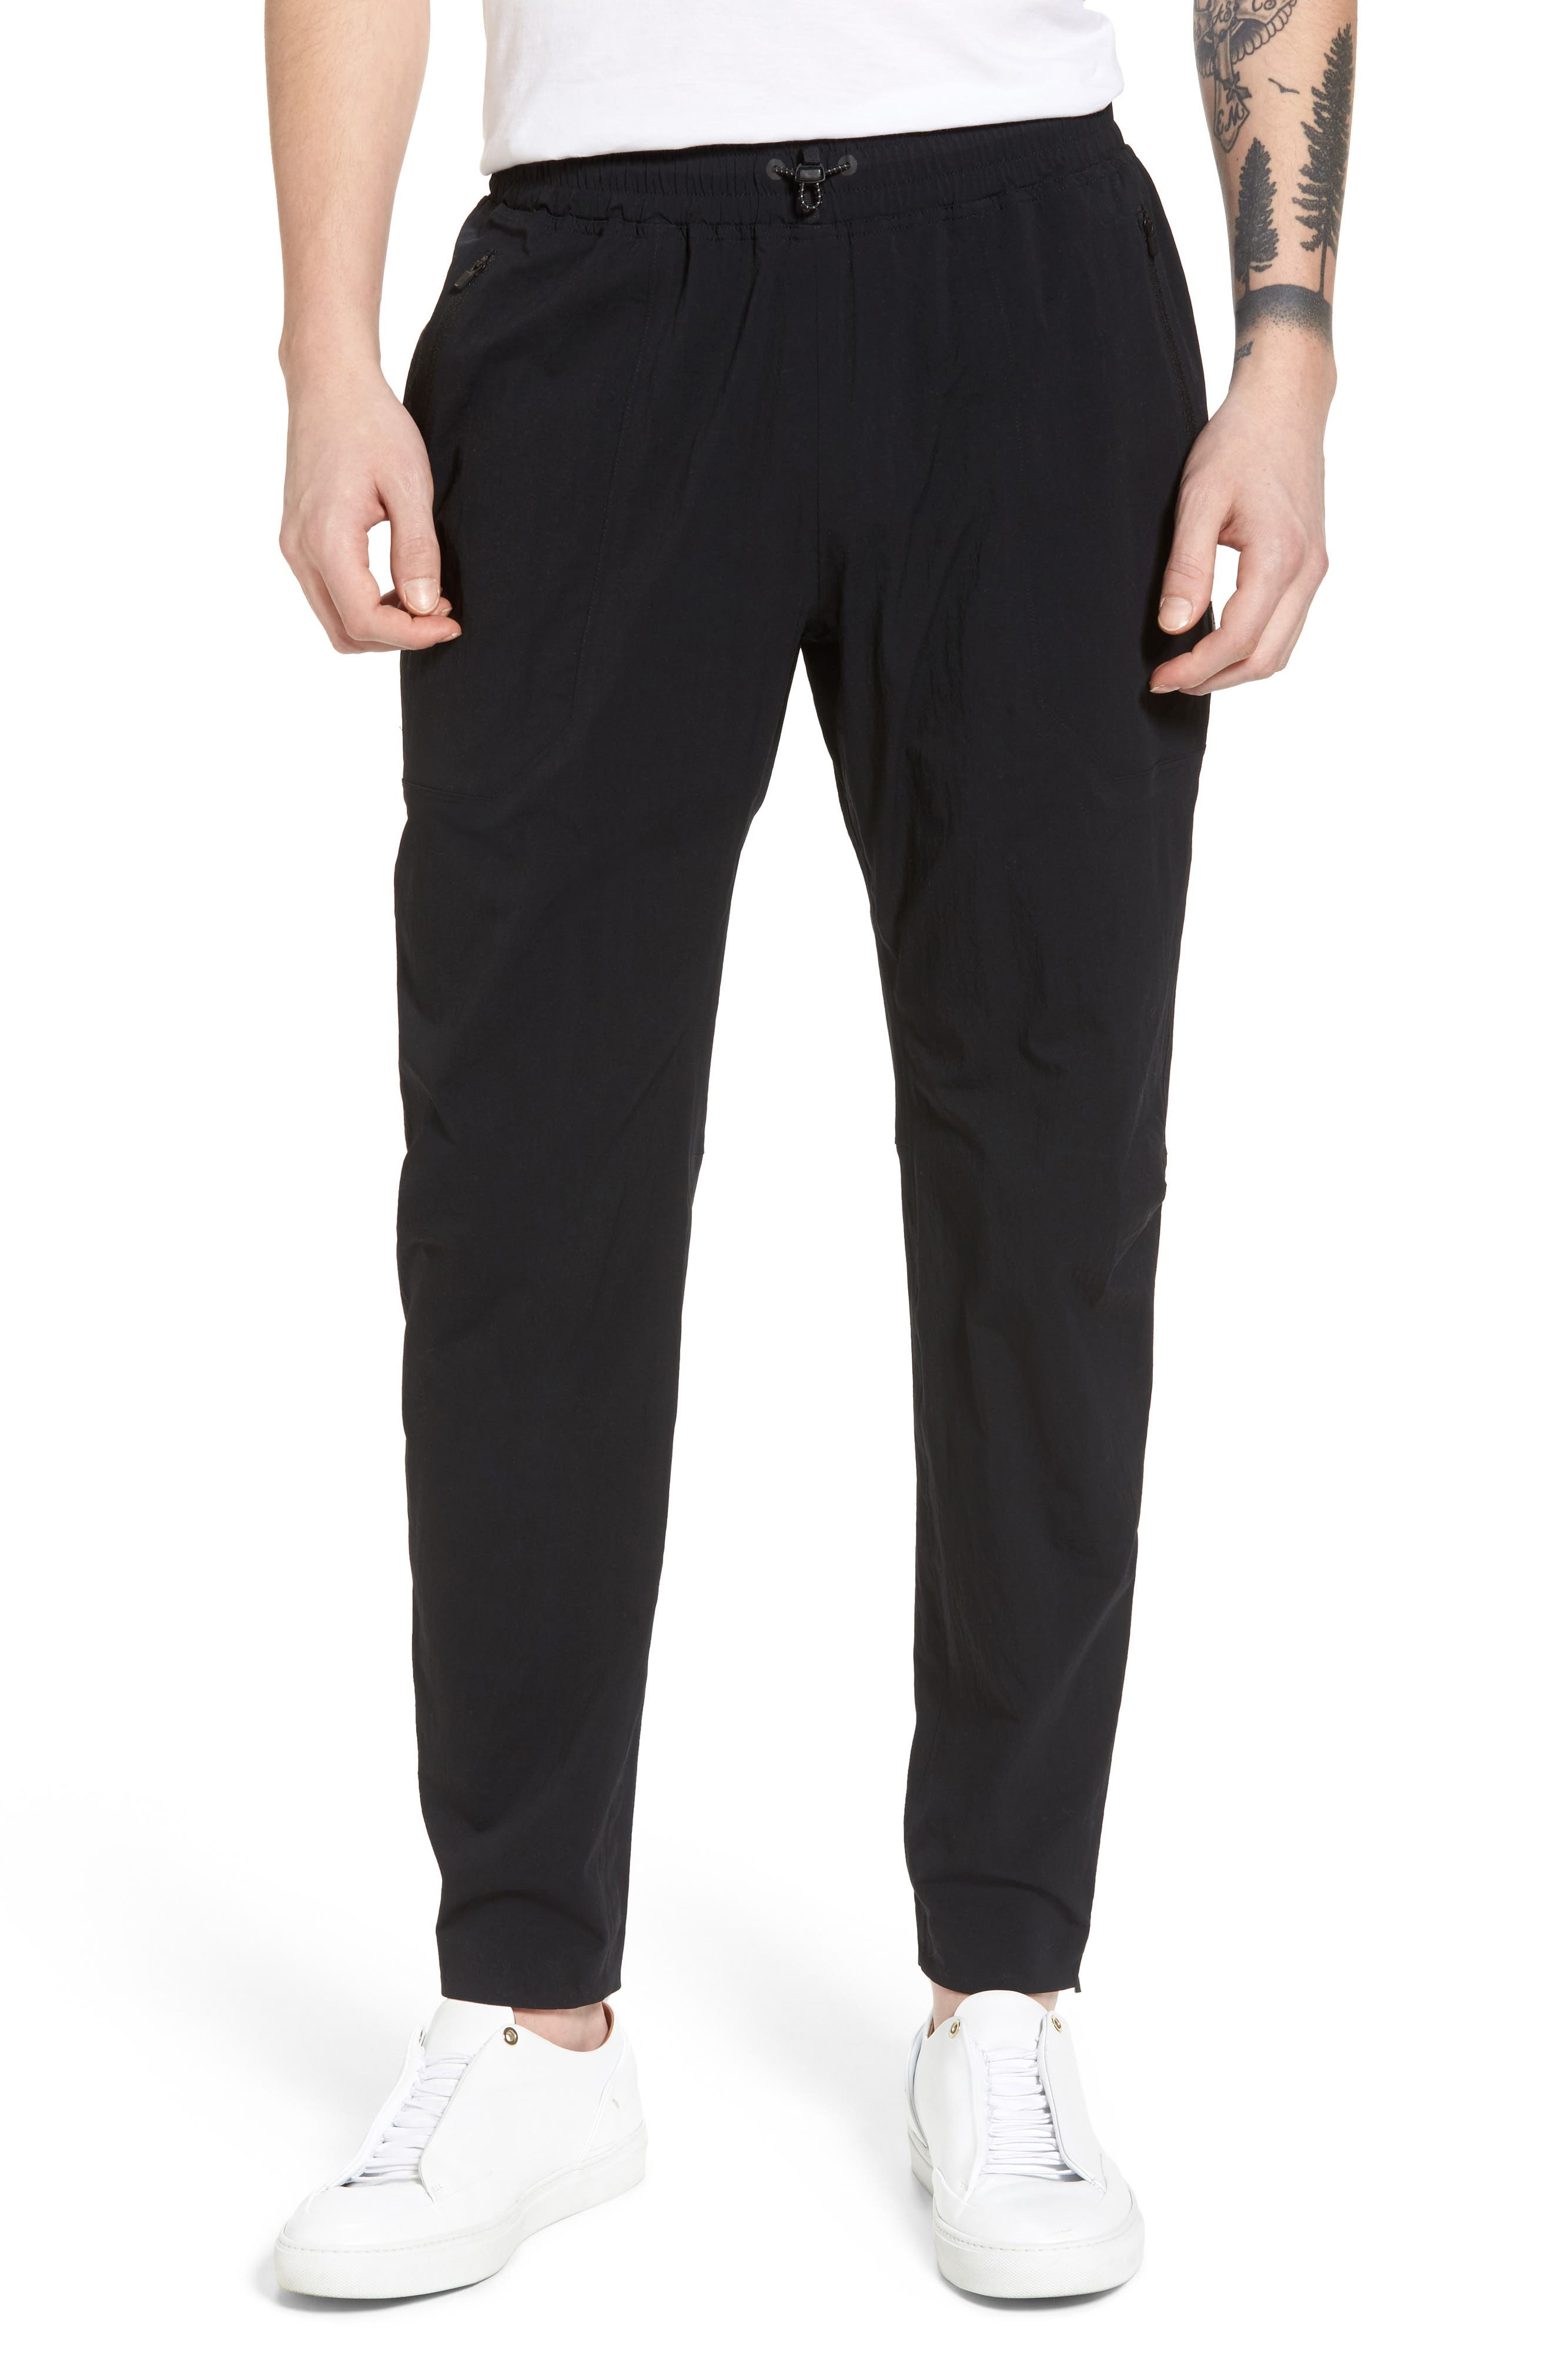 Reigning Champ N279 Sweatpants